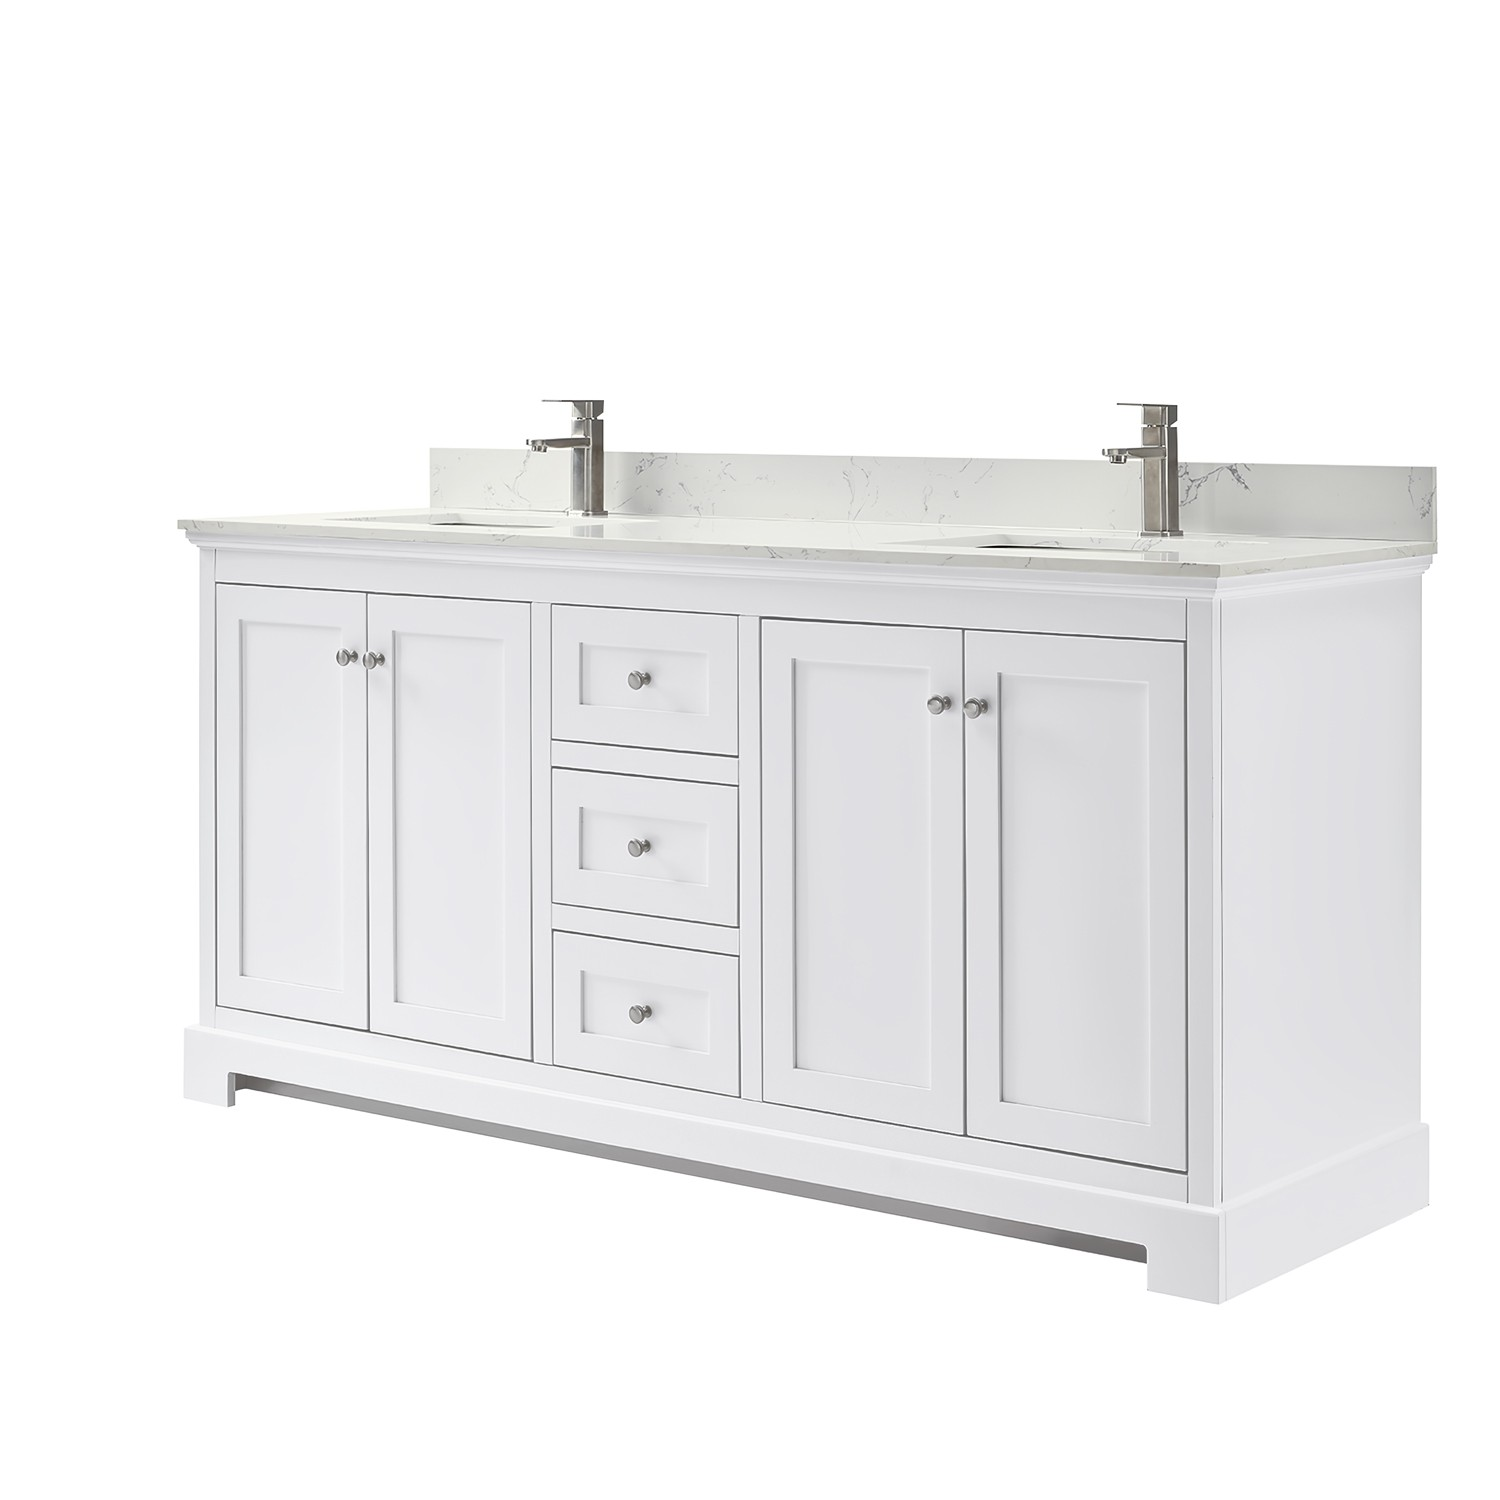 Wyndham Collection Wca404072dwhccunsmxx Ryla 72 Inch Double Bathroom Vanity In White Carrara Cultured Marble